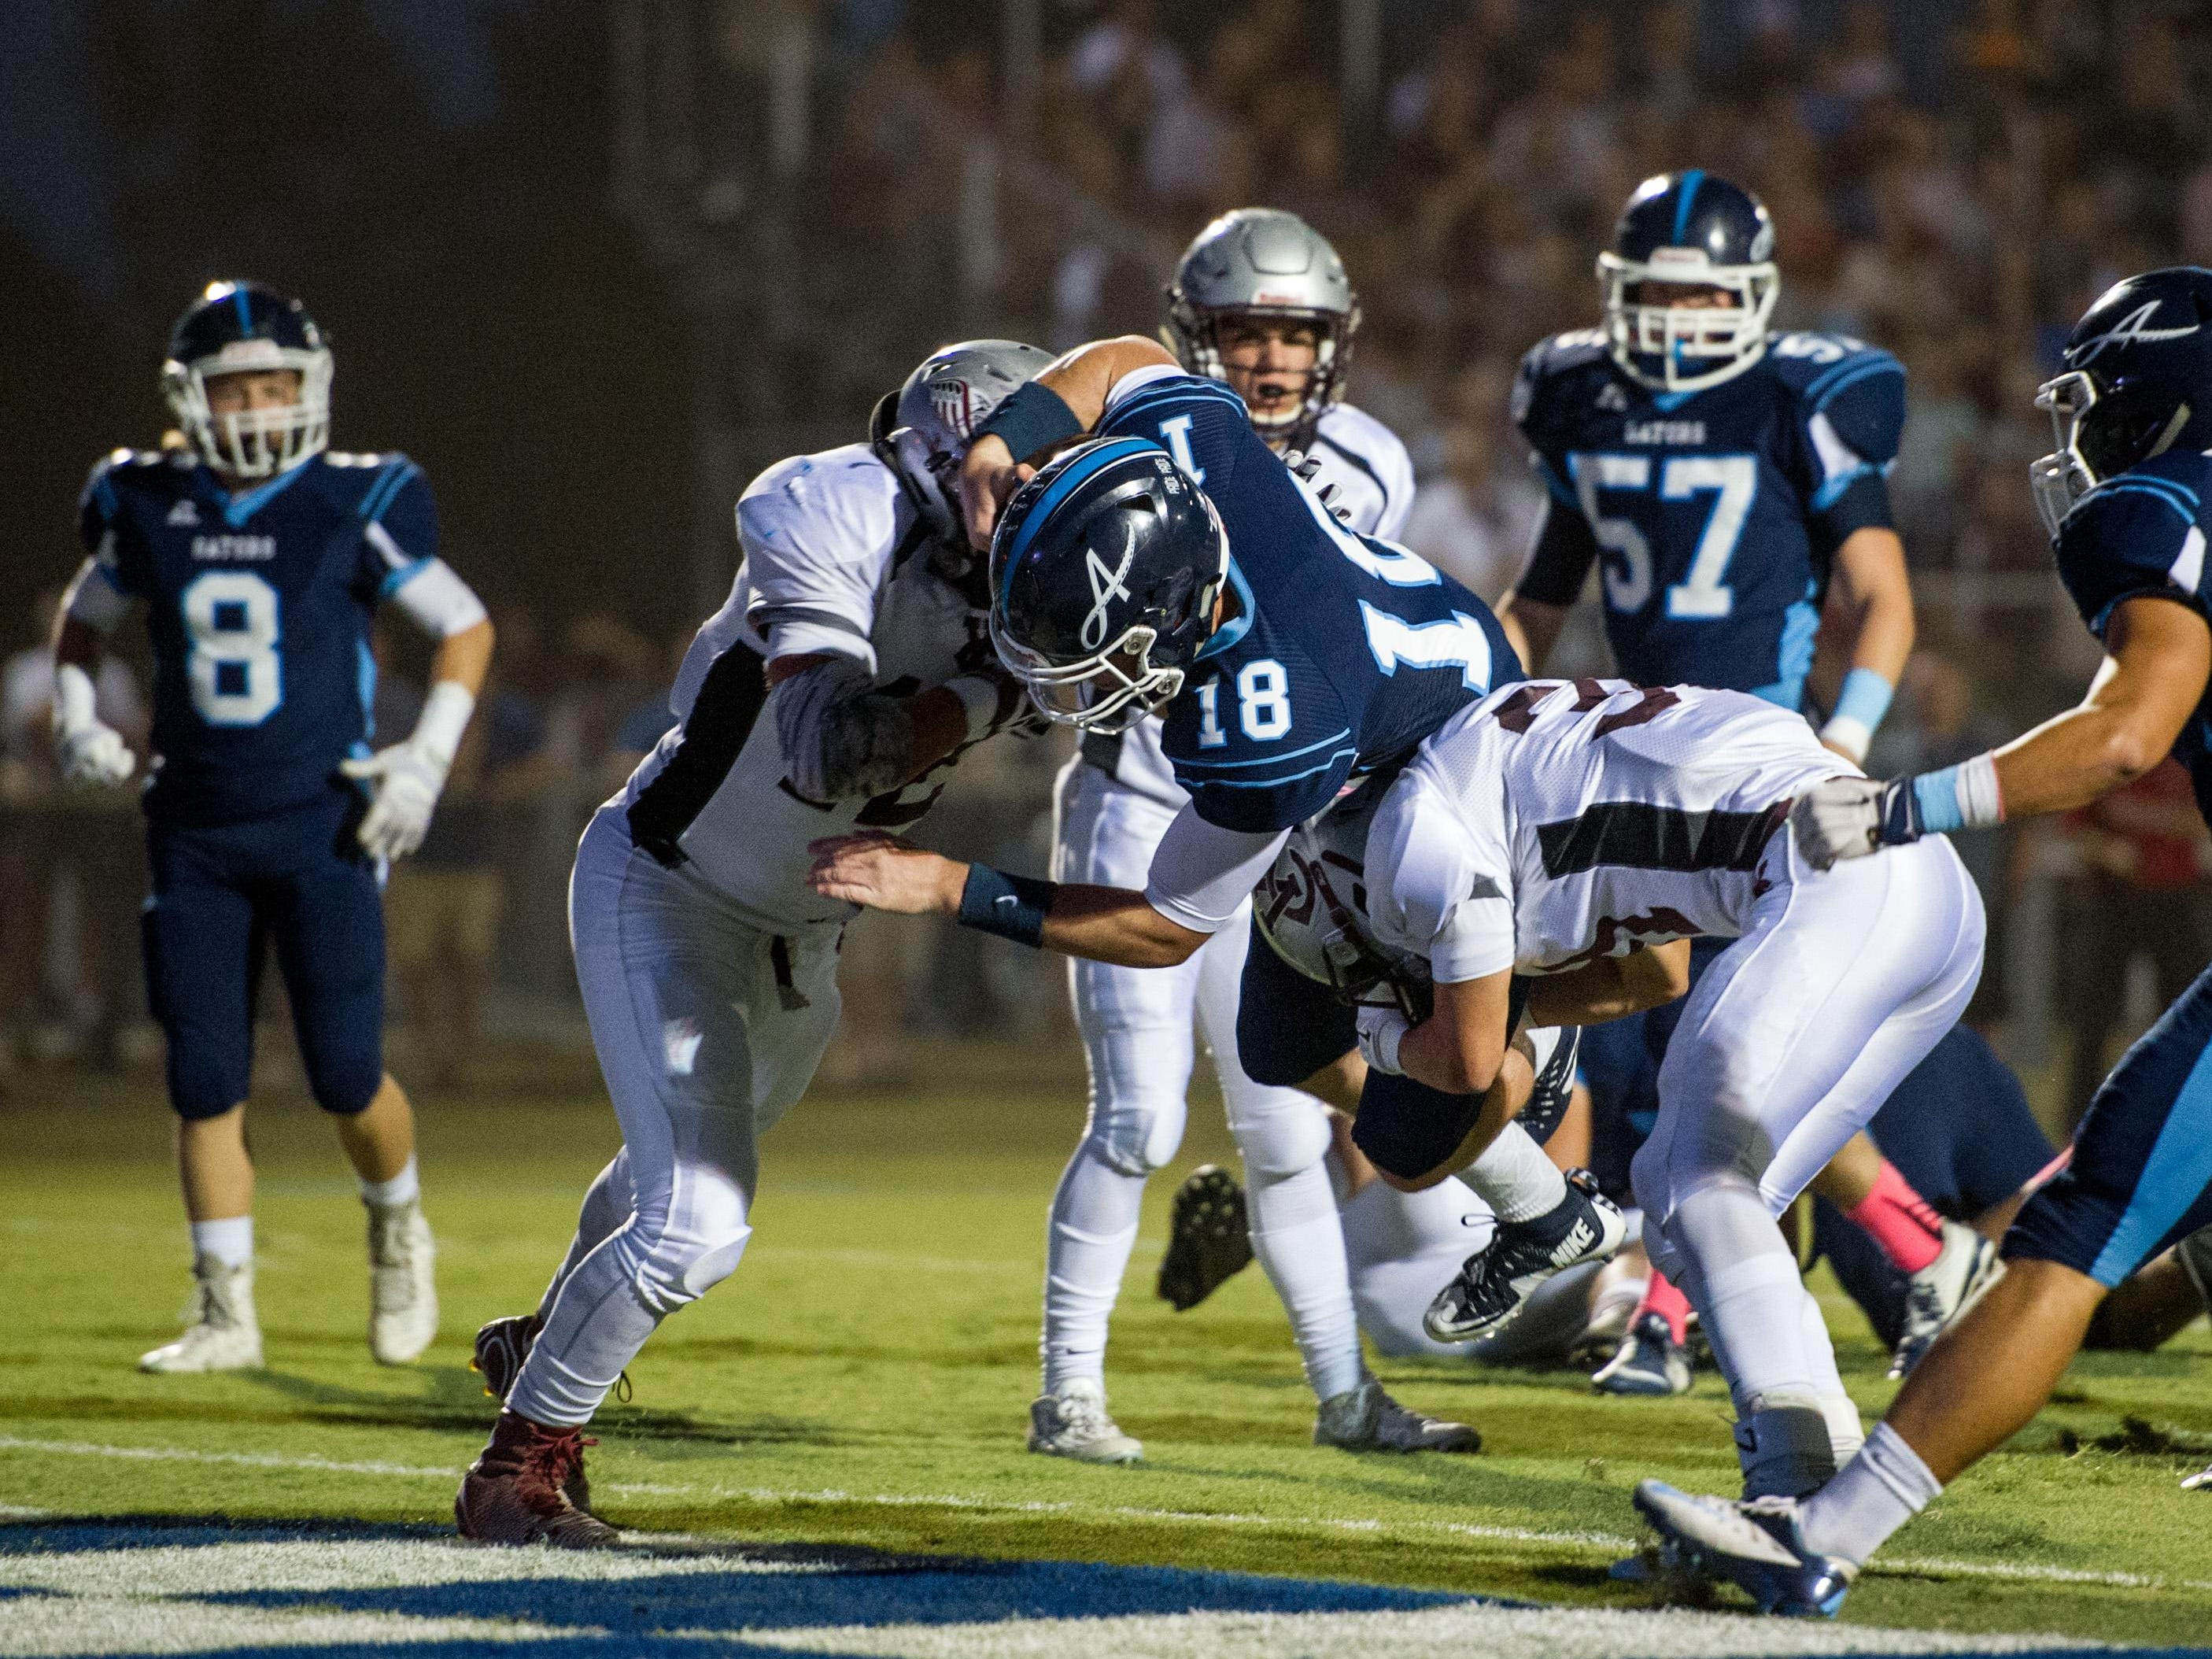 Ascension Episcopal quarterback Jake Arceneaux (18) dives into the end zone to score a touchdown during the first half.